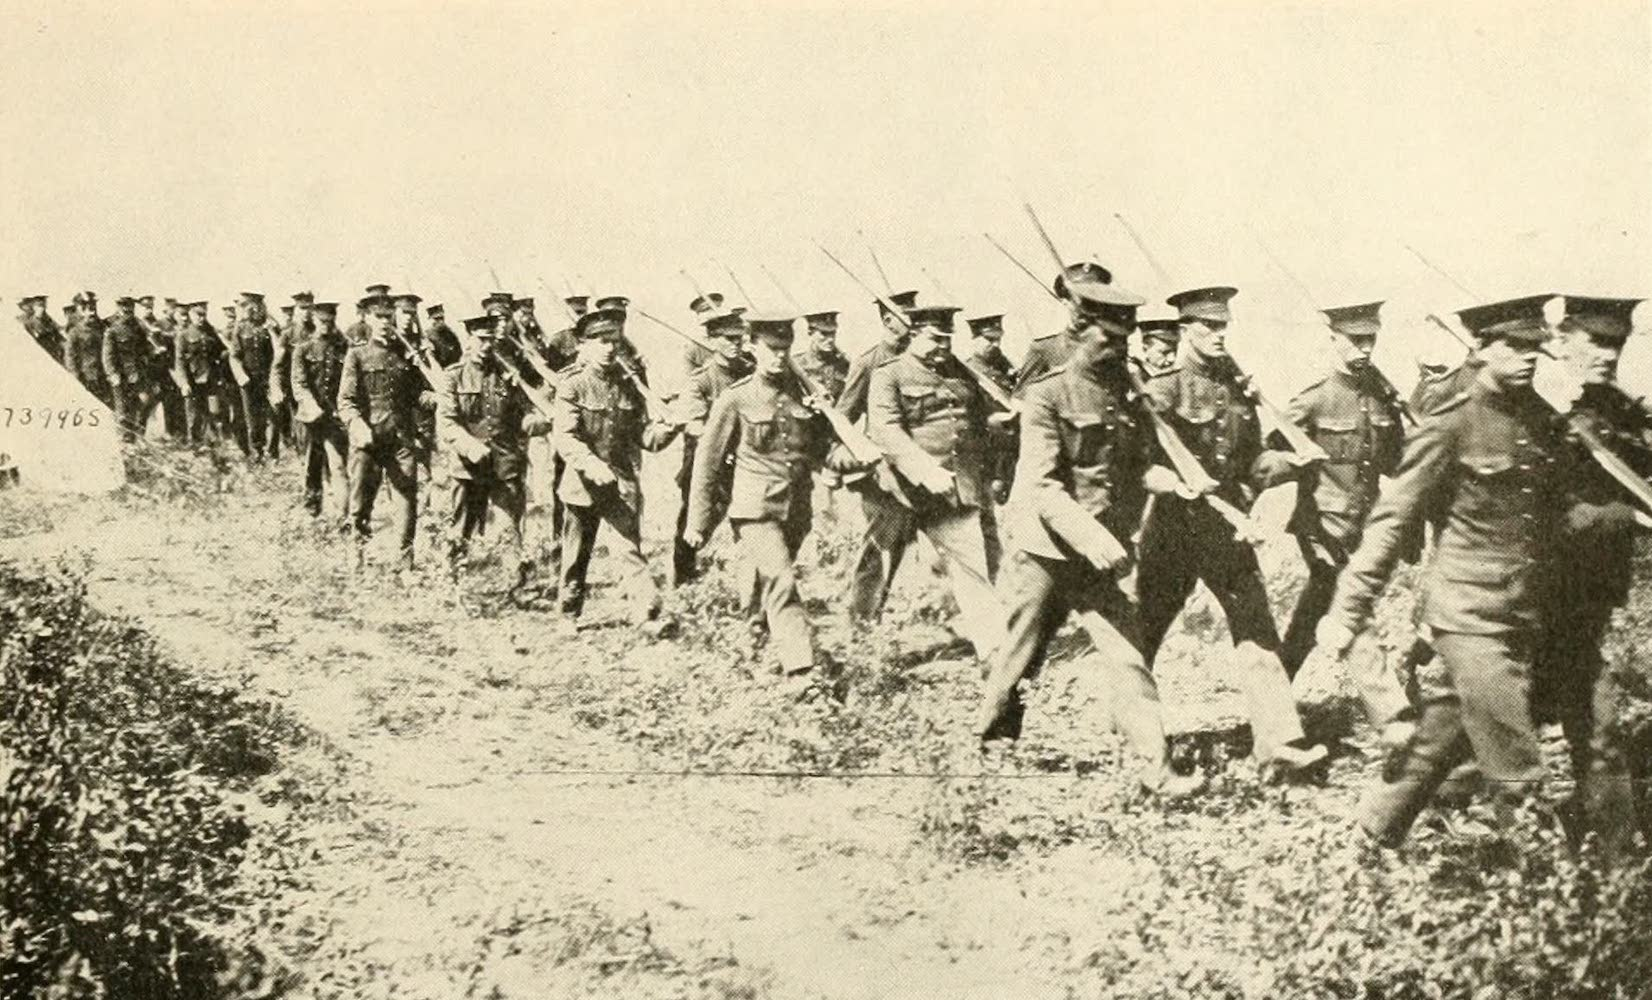 Laird & Lee's World's War Glimpses - In the Canadian Mobilization Camp (1914)